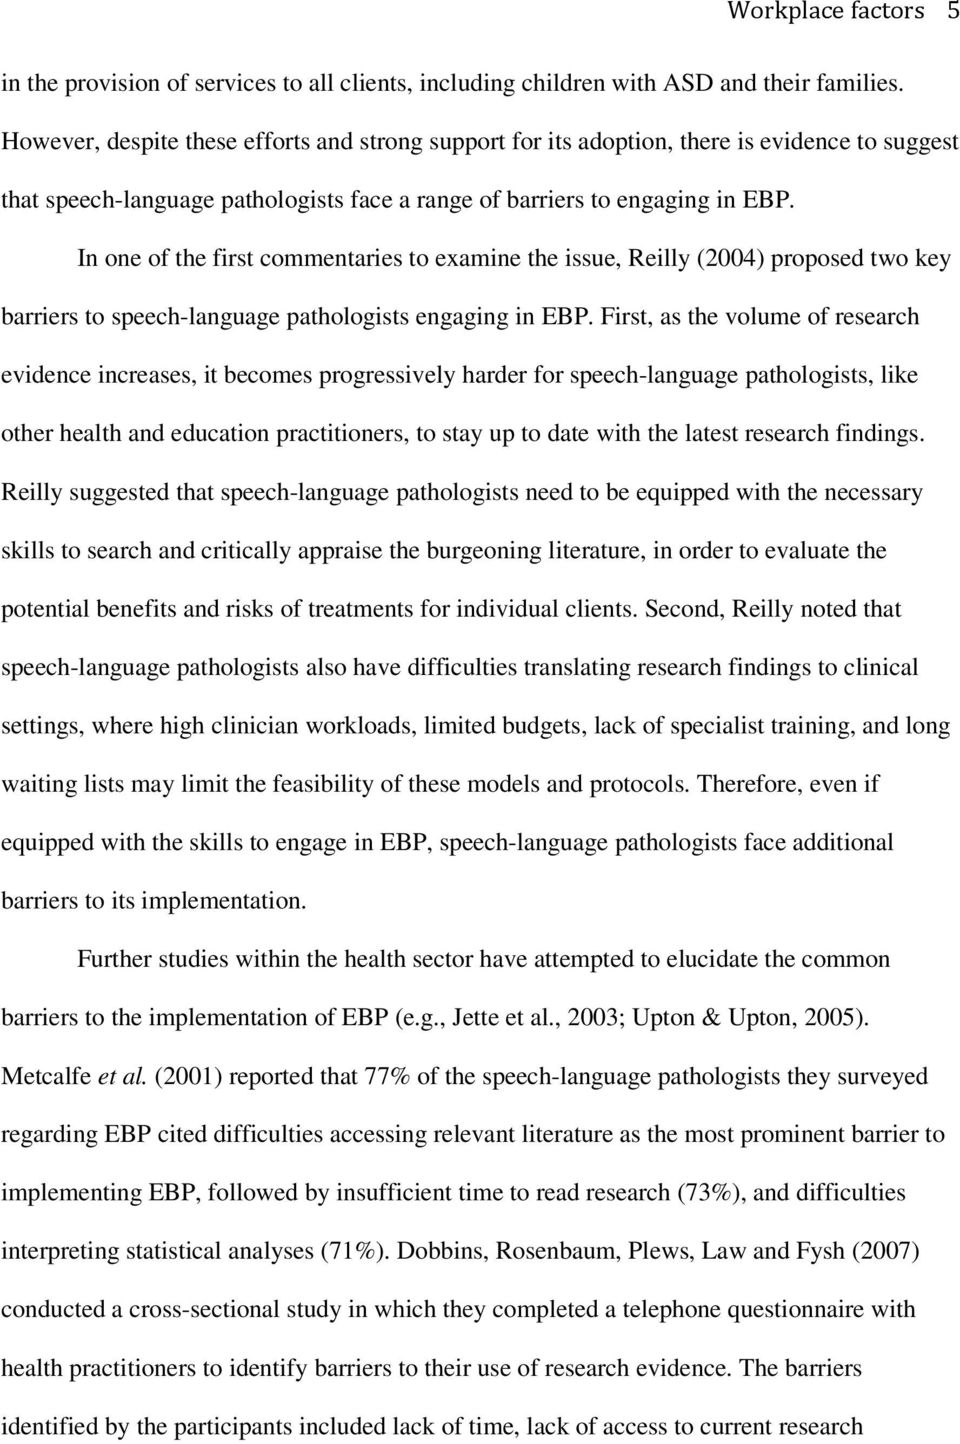 In one of the first commentaries to examine the issue, Reilly (2004) proposed two key barriers to speech-language pathologists engaging in EBP.